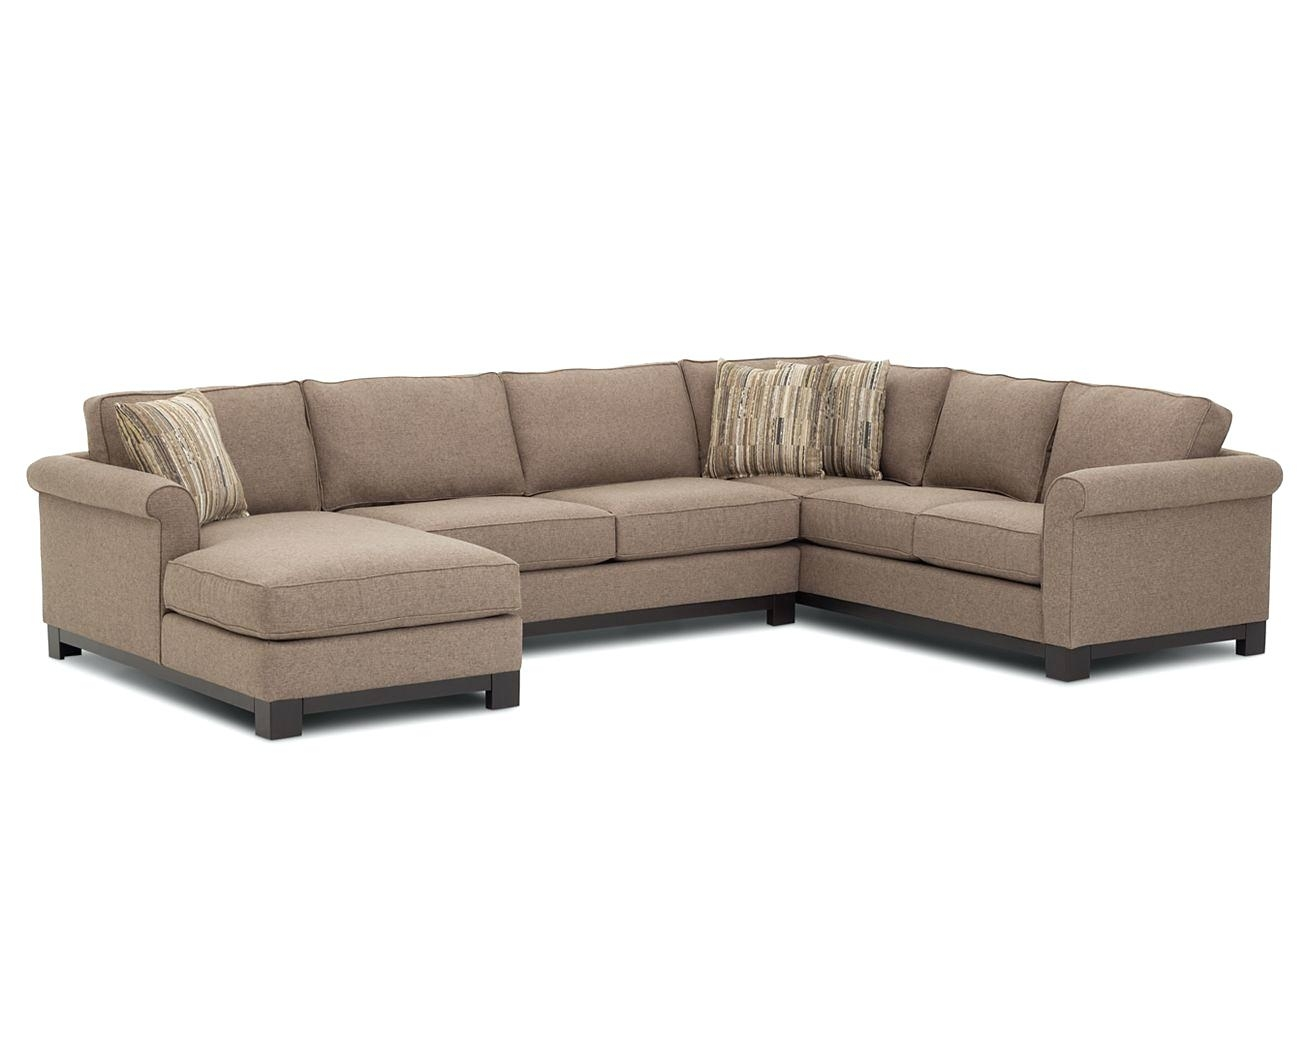 Furniture Row Sectionals – Premiojer (View 7 of 10)